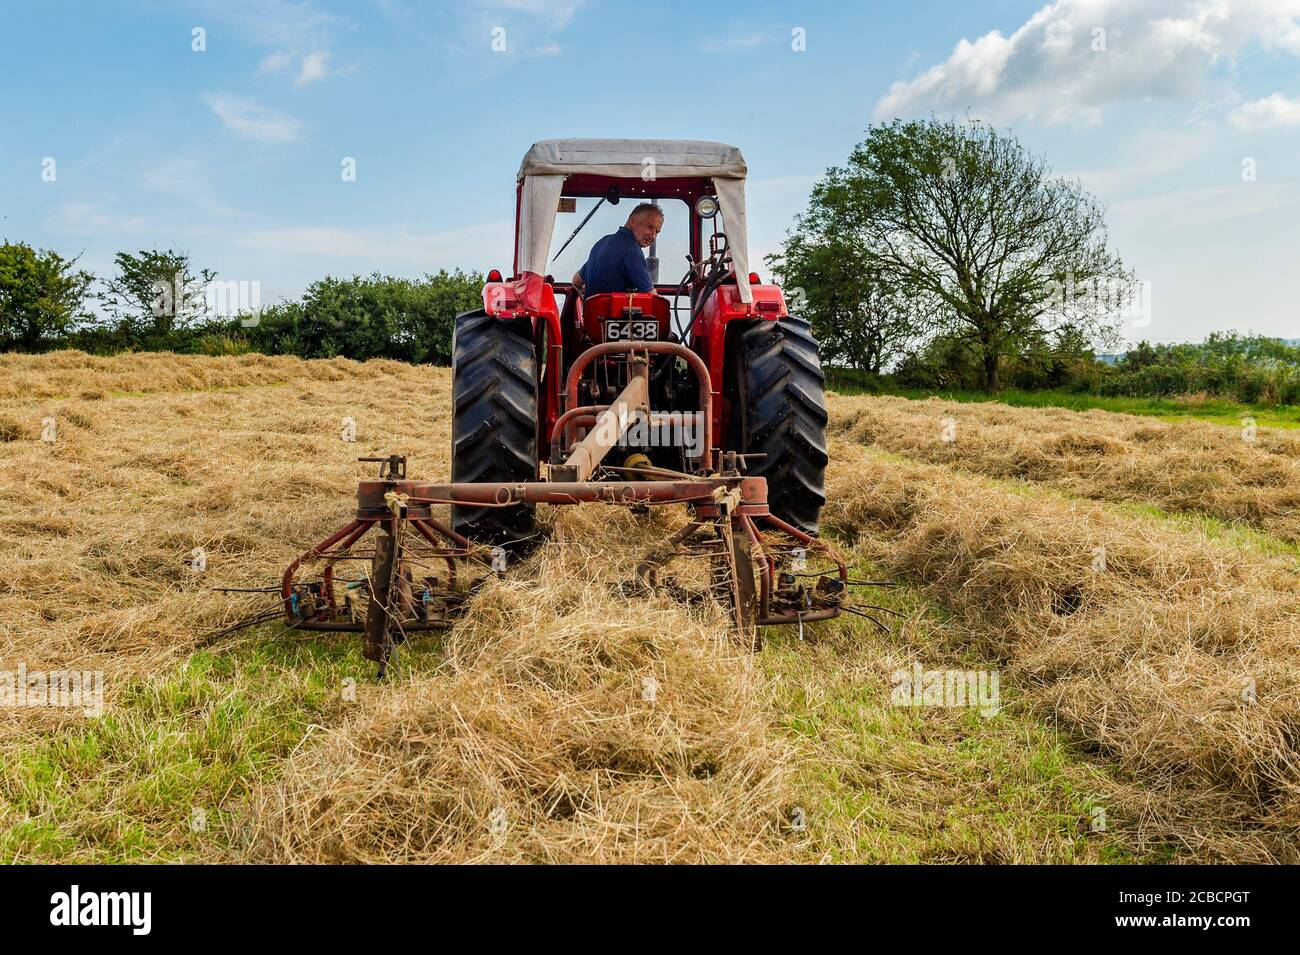 drinagh-west-cork-ireland-12th-aug-2020-drinagh-farmer-george-wilson-uses-a-1970s-massey-ferguson-168-and-a-1970s-haybob-to-fluff-the-cut-hay-and-narrow-the-swath-before-the-hay-is-baled-credit-ag-newsalamy-live-news-2CBCPGT.jpg